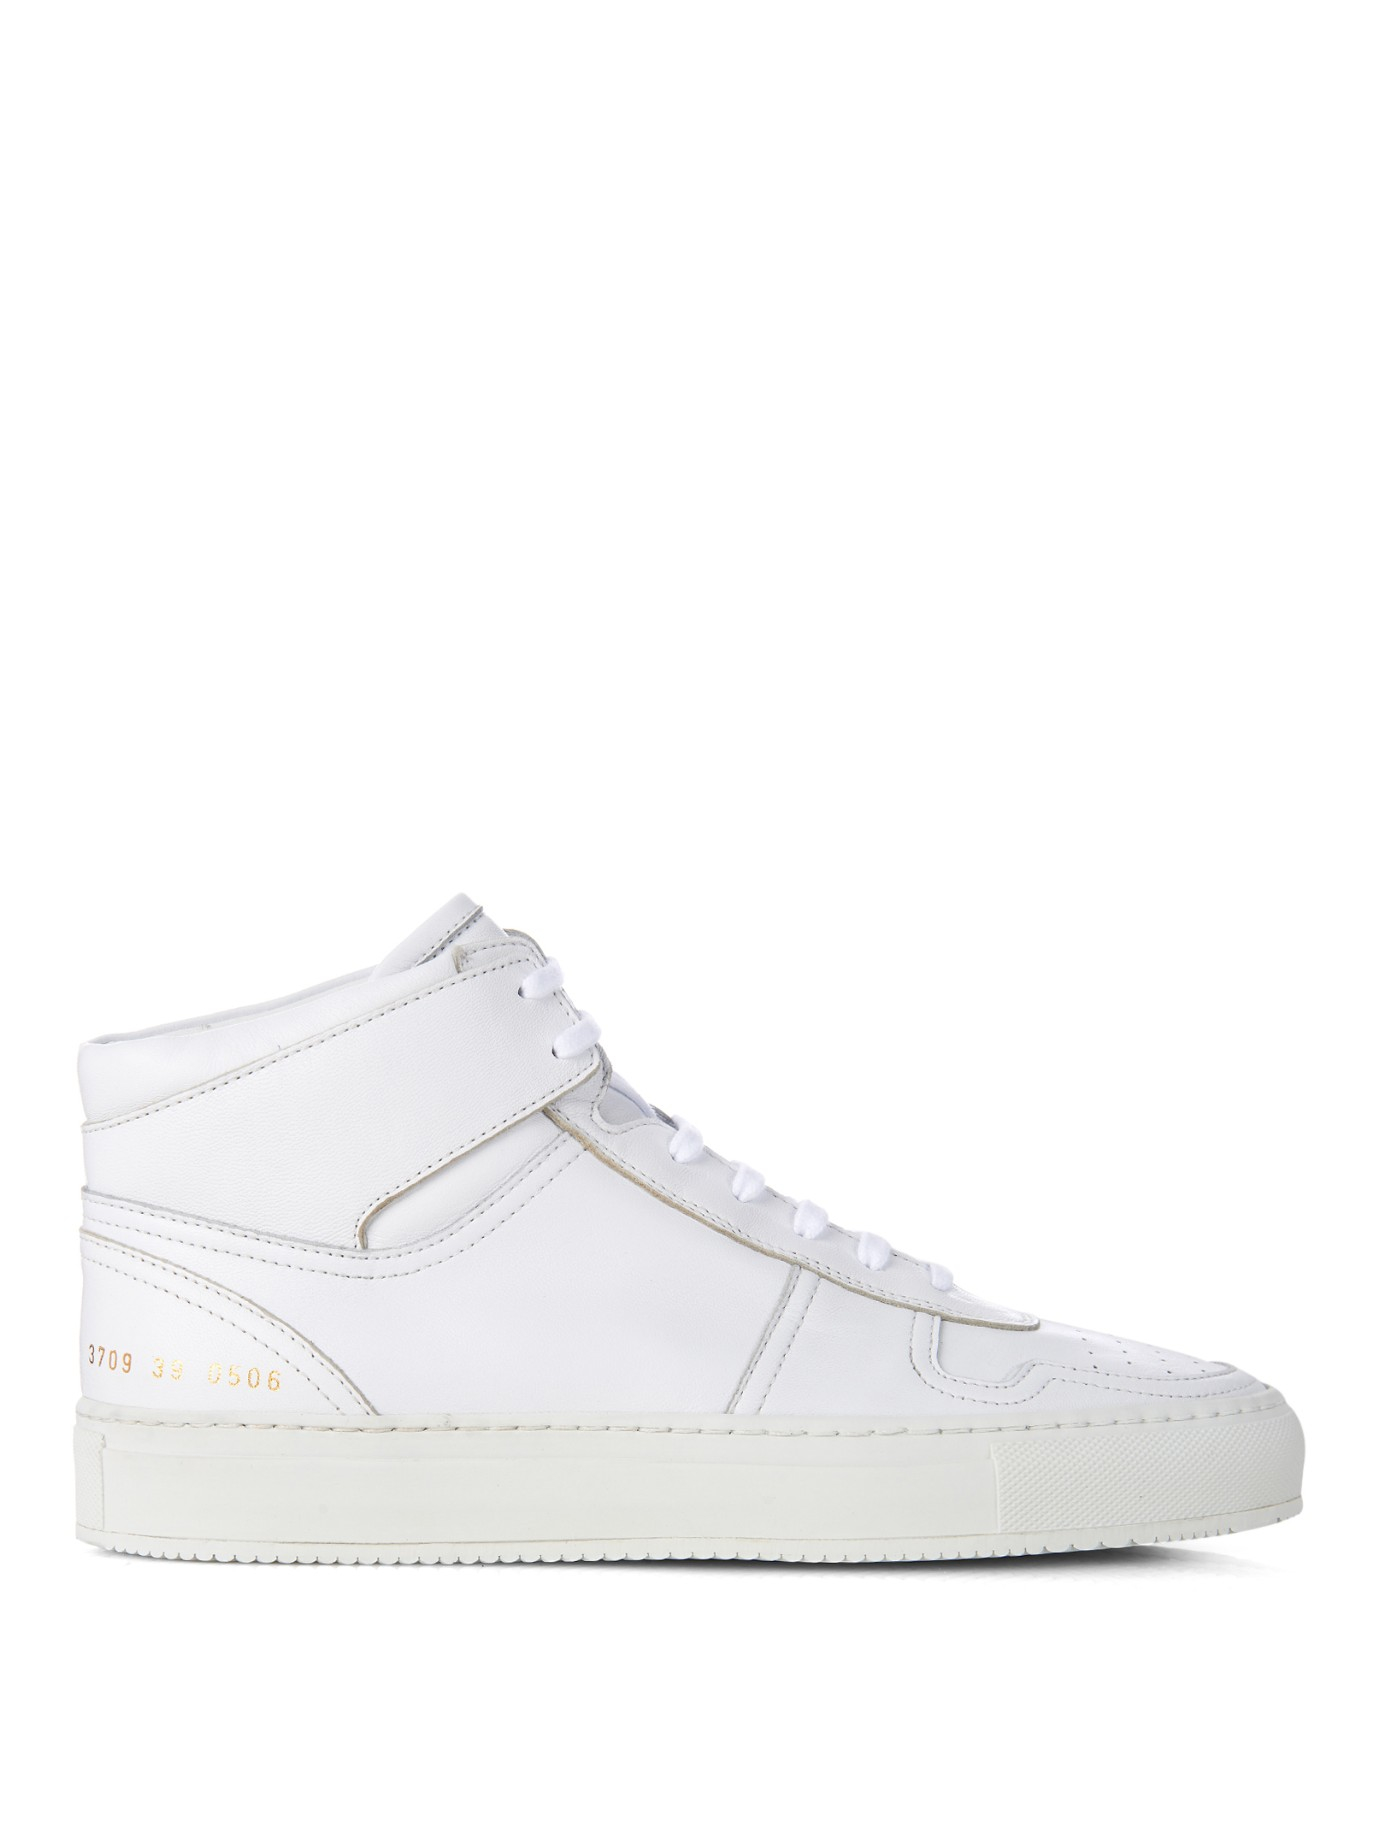 48e5f3fe30de Lyst - Common Projects Basketball Hi-top Sneakers in White